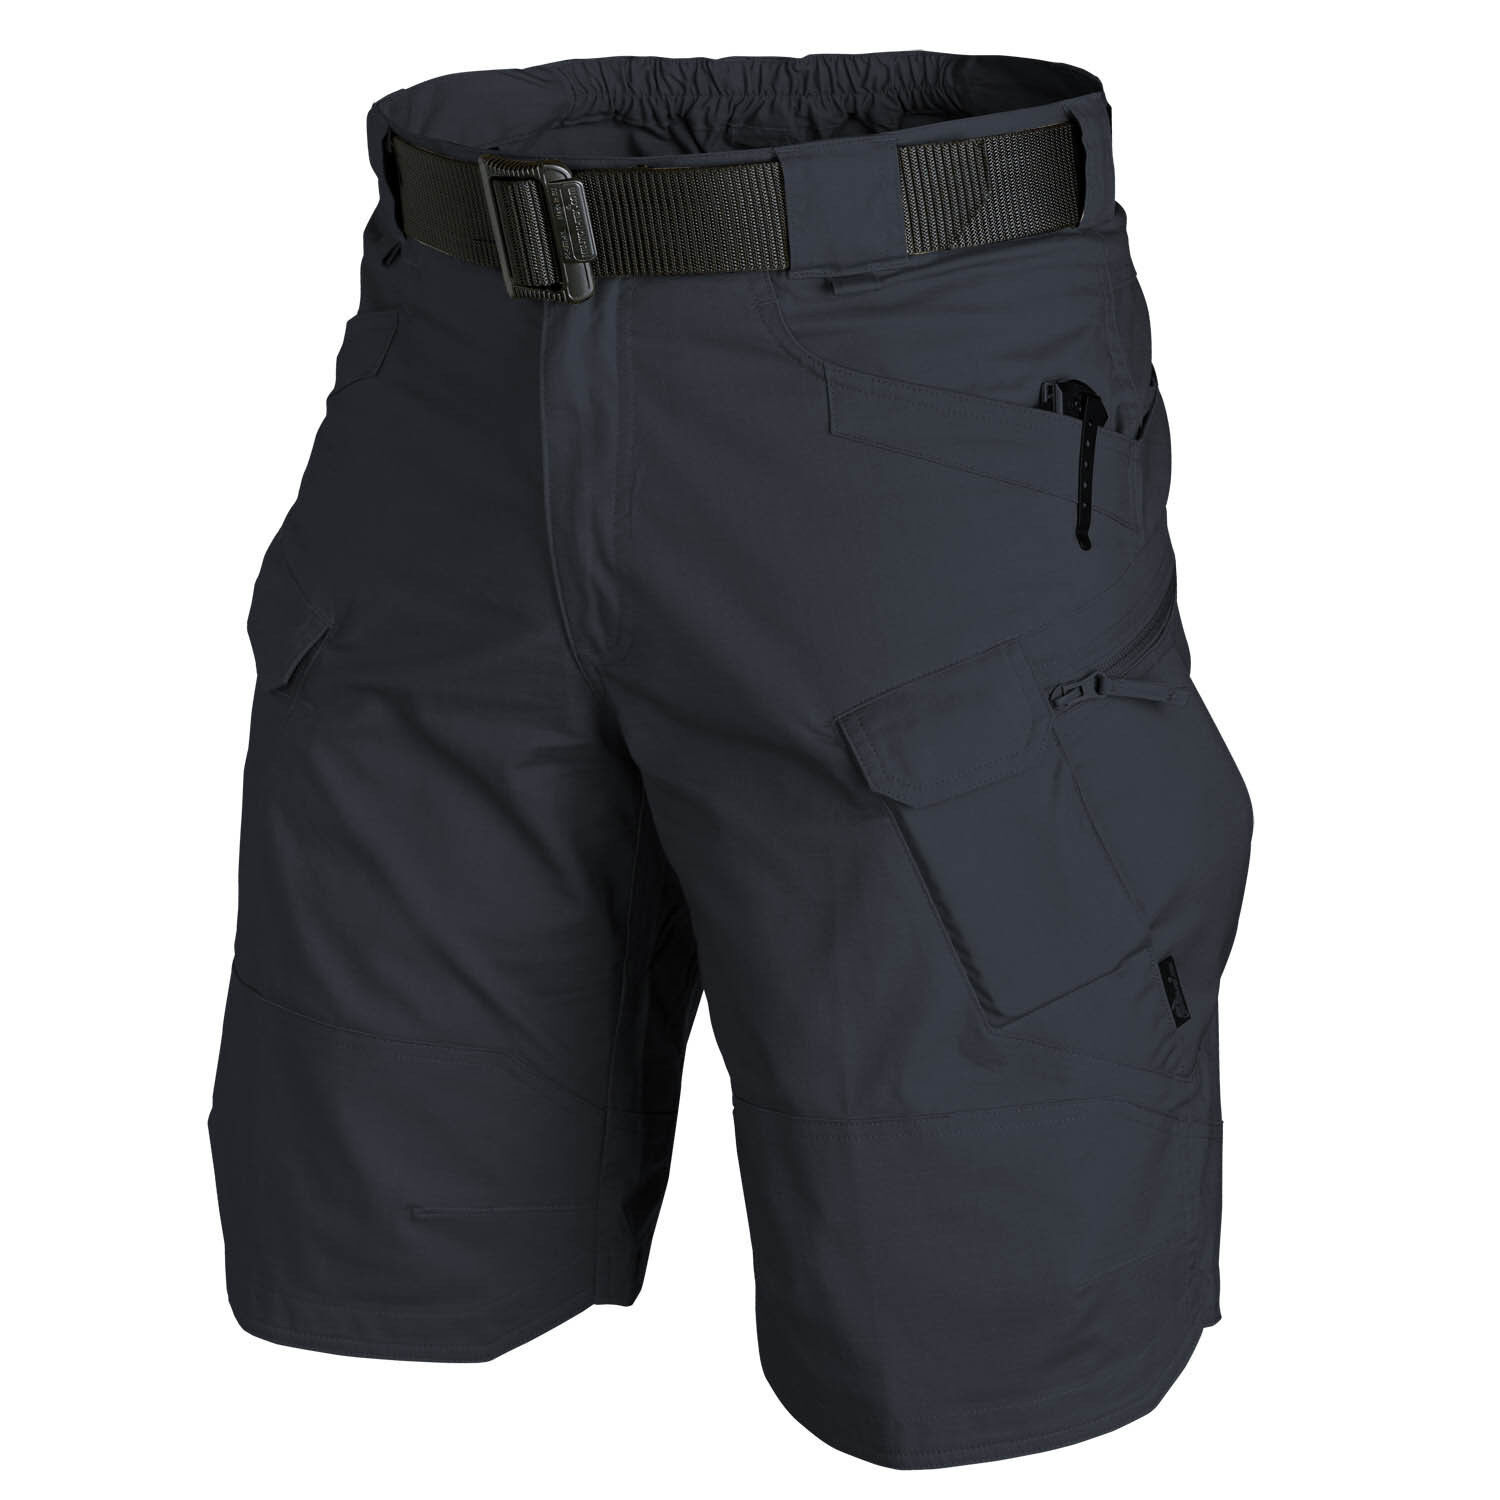 HELIKON TEX OUTDOOR UTS URBAN TACTICAL PANTS OUTDOOR TEX CARGO SHORTS Hose Navy Blau Gr. 3XL 866d5a